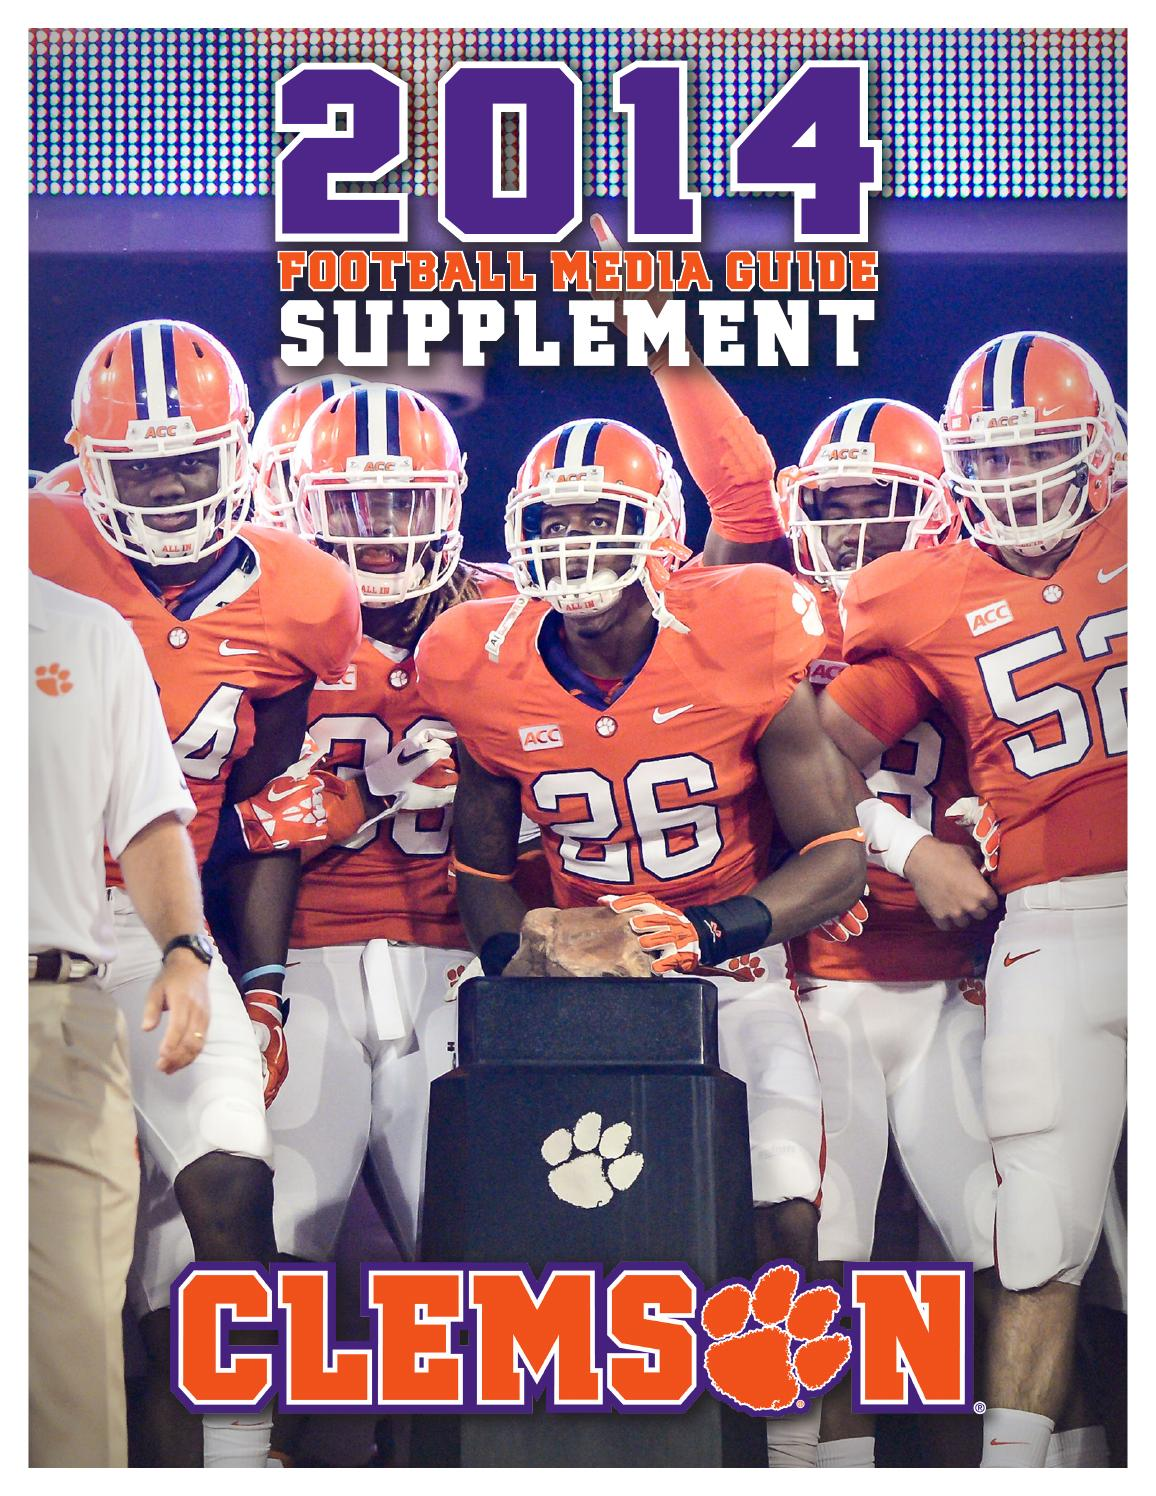 2014 Clemson Tigers football team